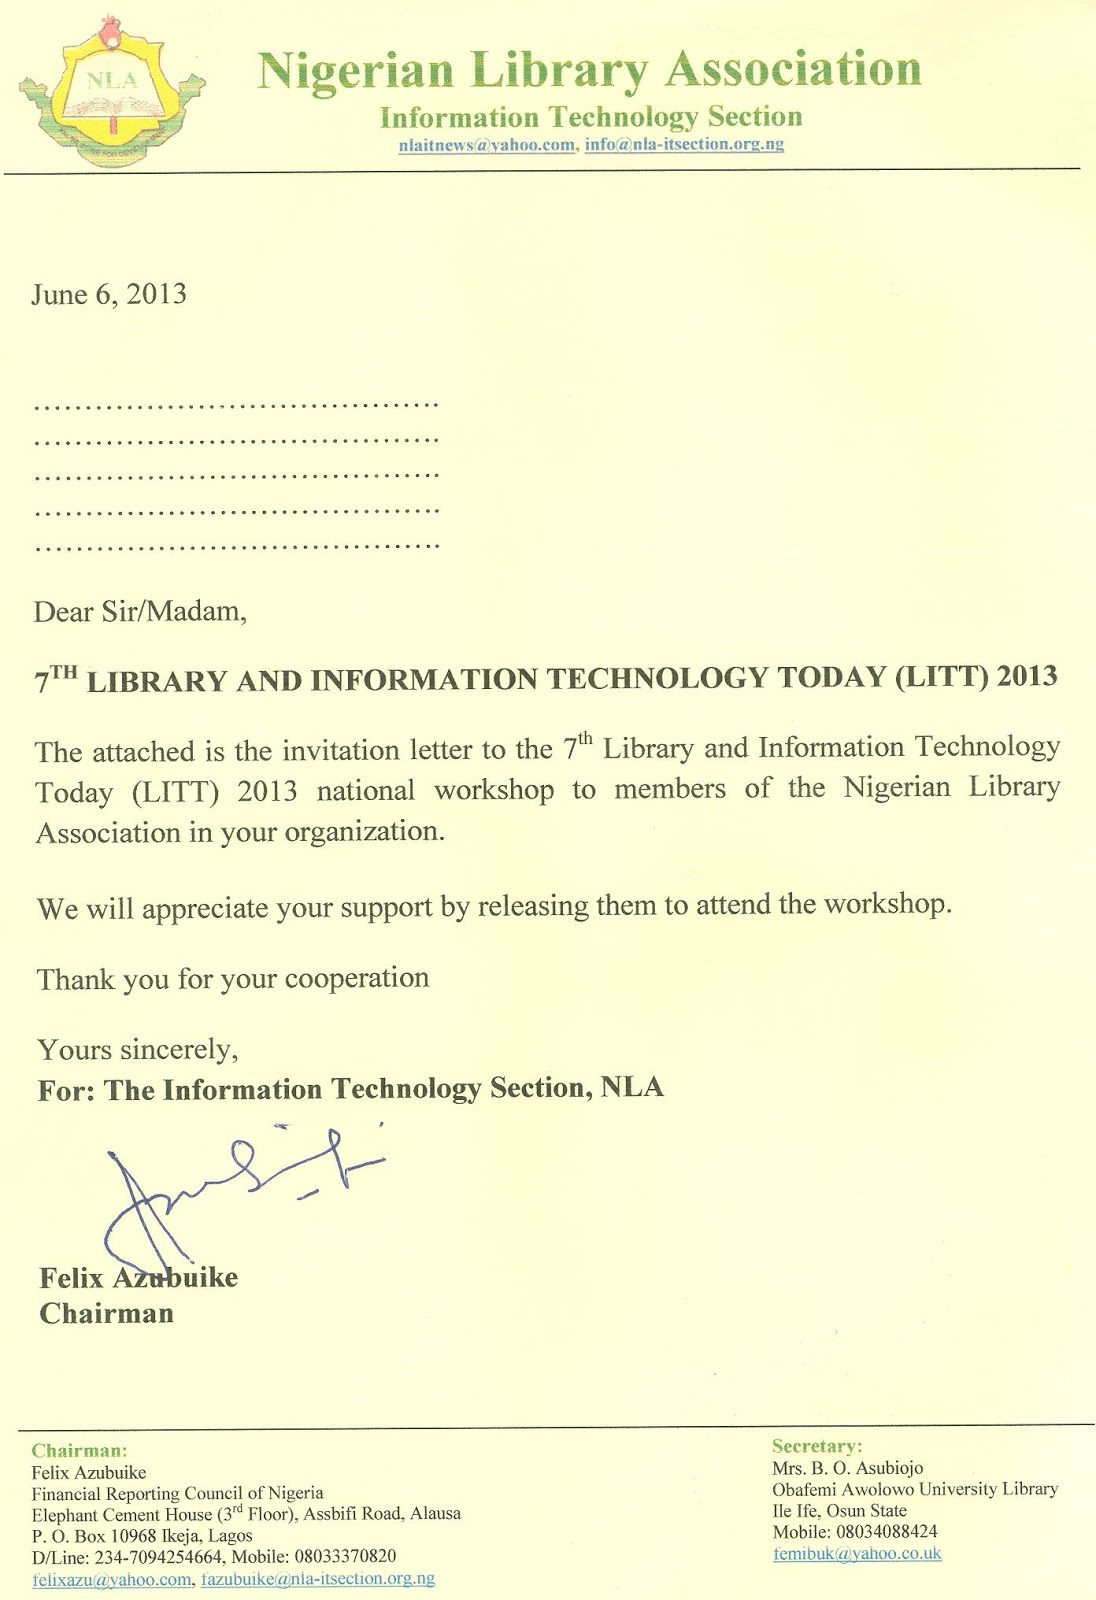 INVITATION TO LITT 2013 NIGERIAN LIBRARIES EVOLVING IN NEW